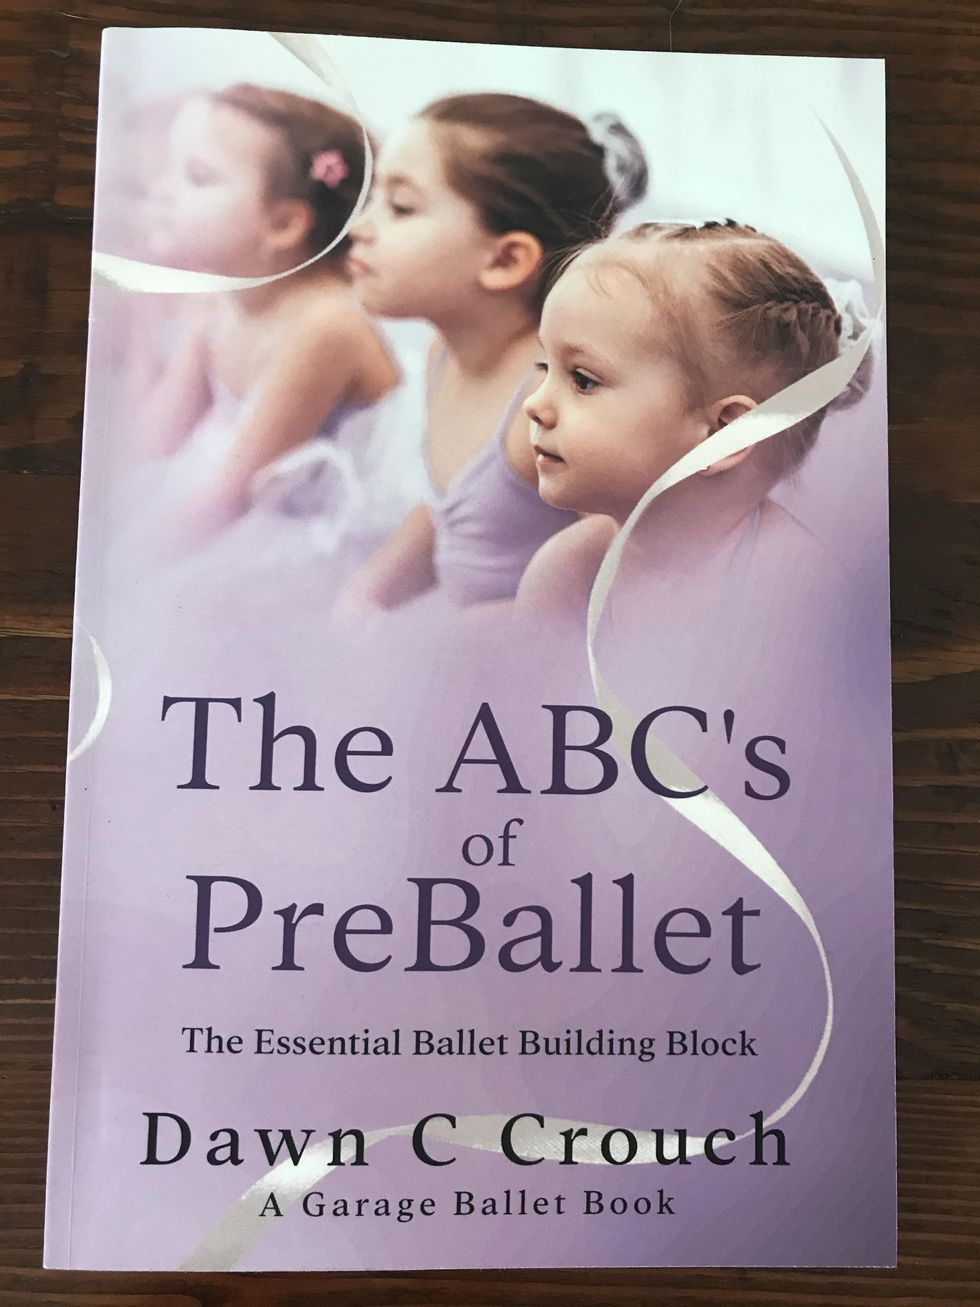 The ABCs of preballet lays flat on a wooden table. It is a purple paperback book, with an image of 3 young girls wearing purple leotards and tutus